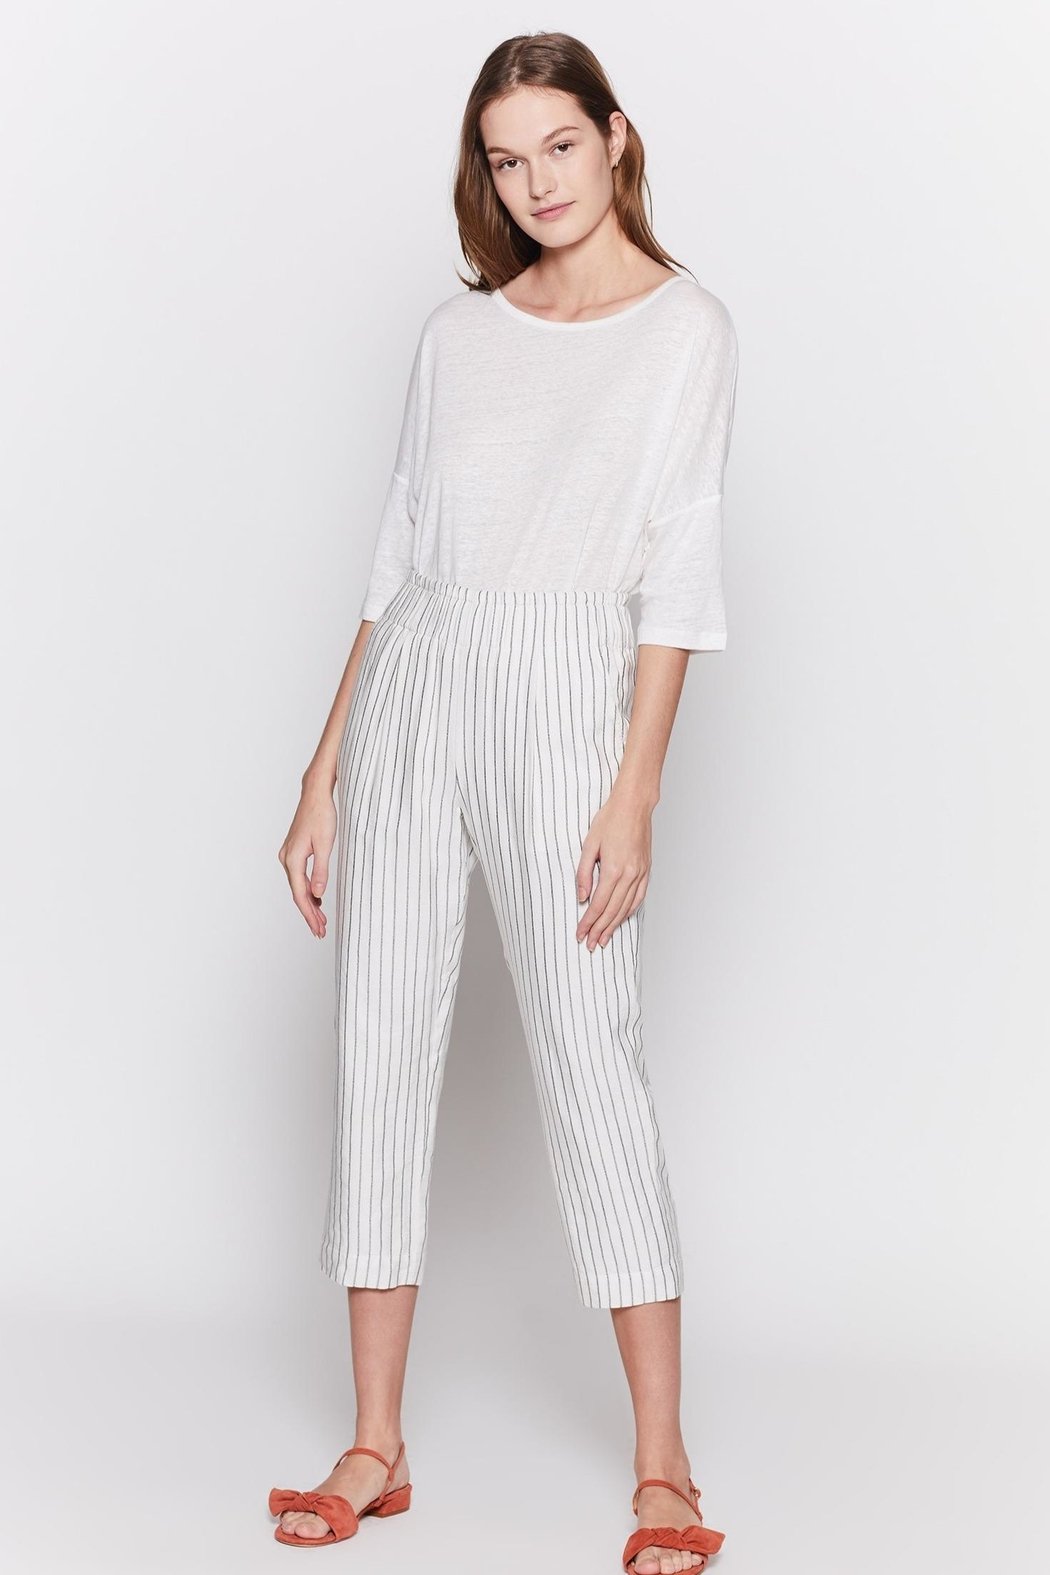 Joie Araona Porcelain Pants - Side Cropped Image